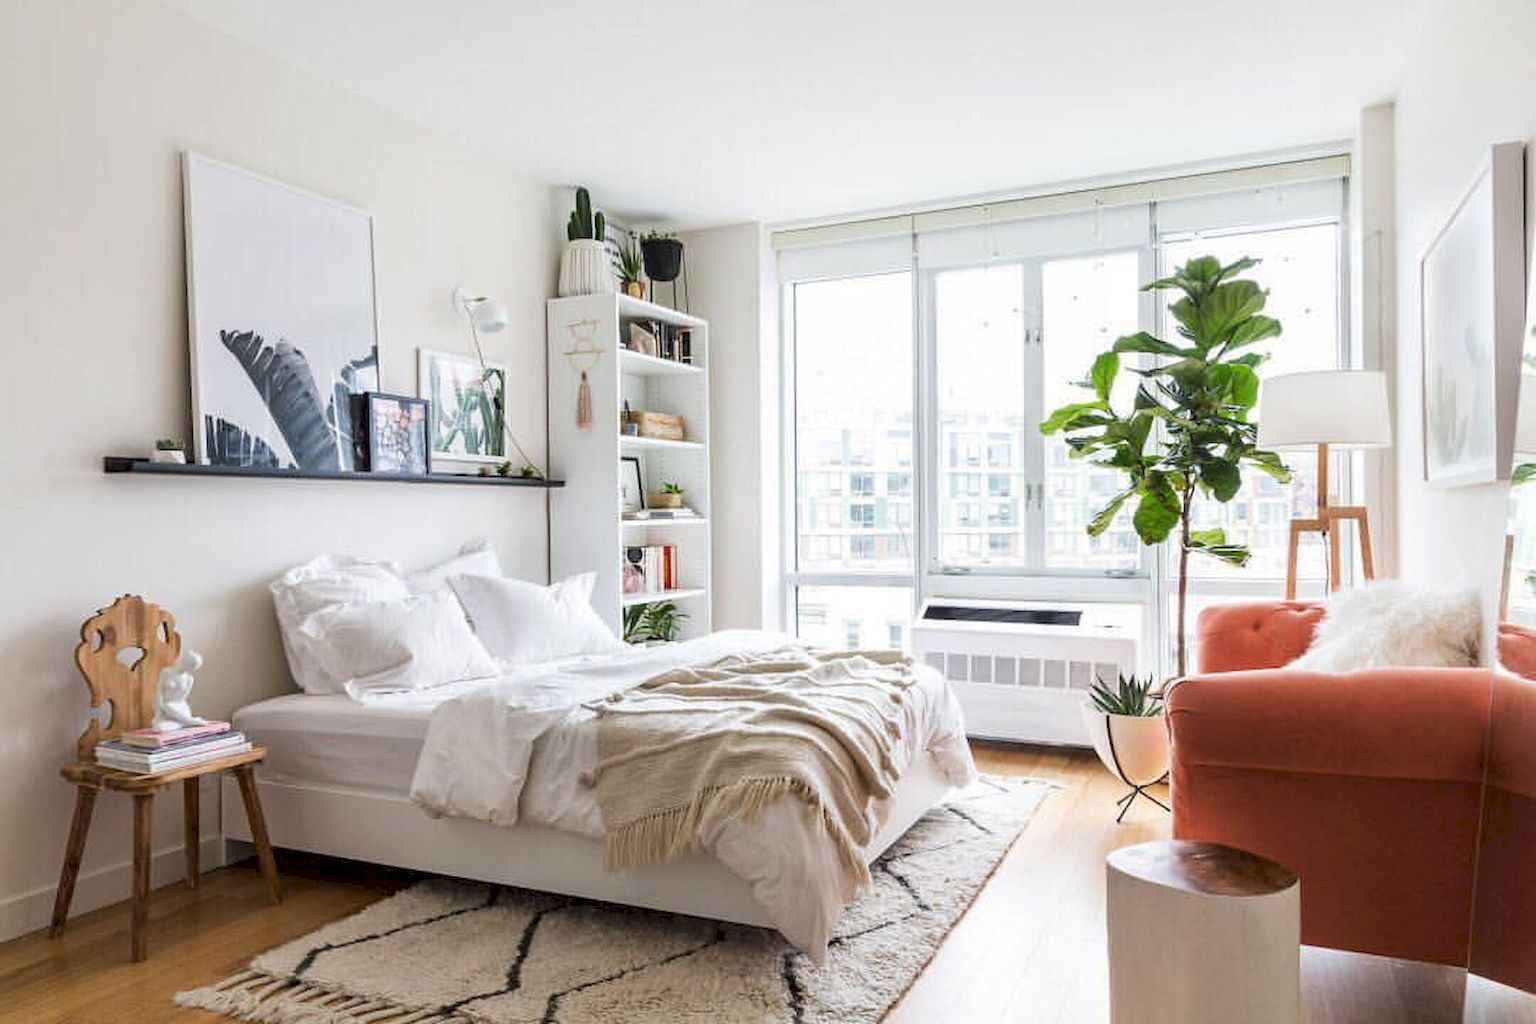 Amazing small first apartment decorating ideas (39)